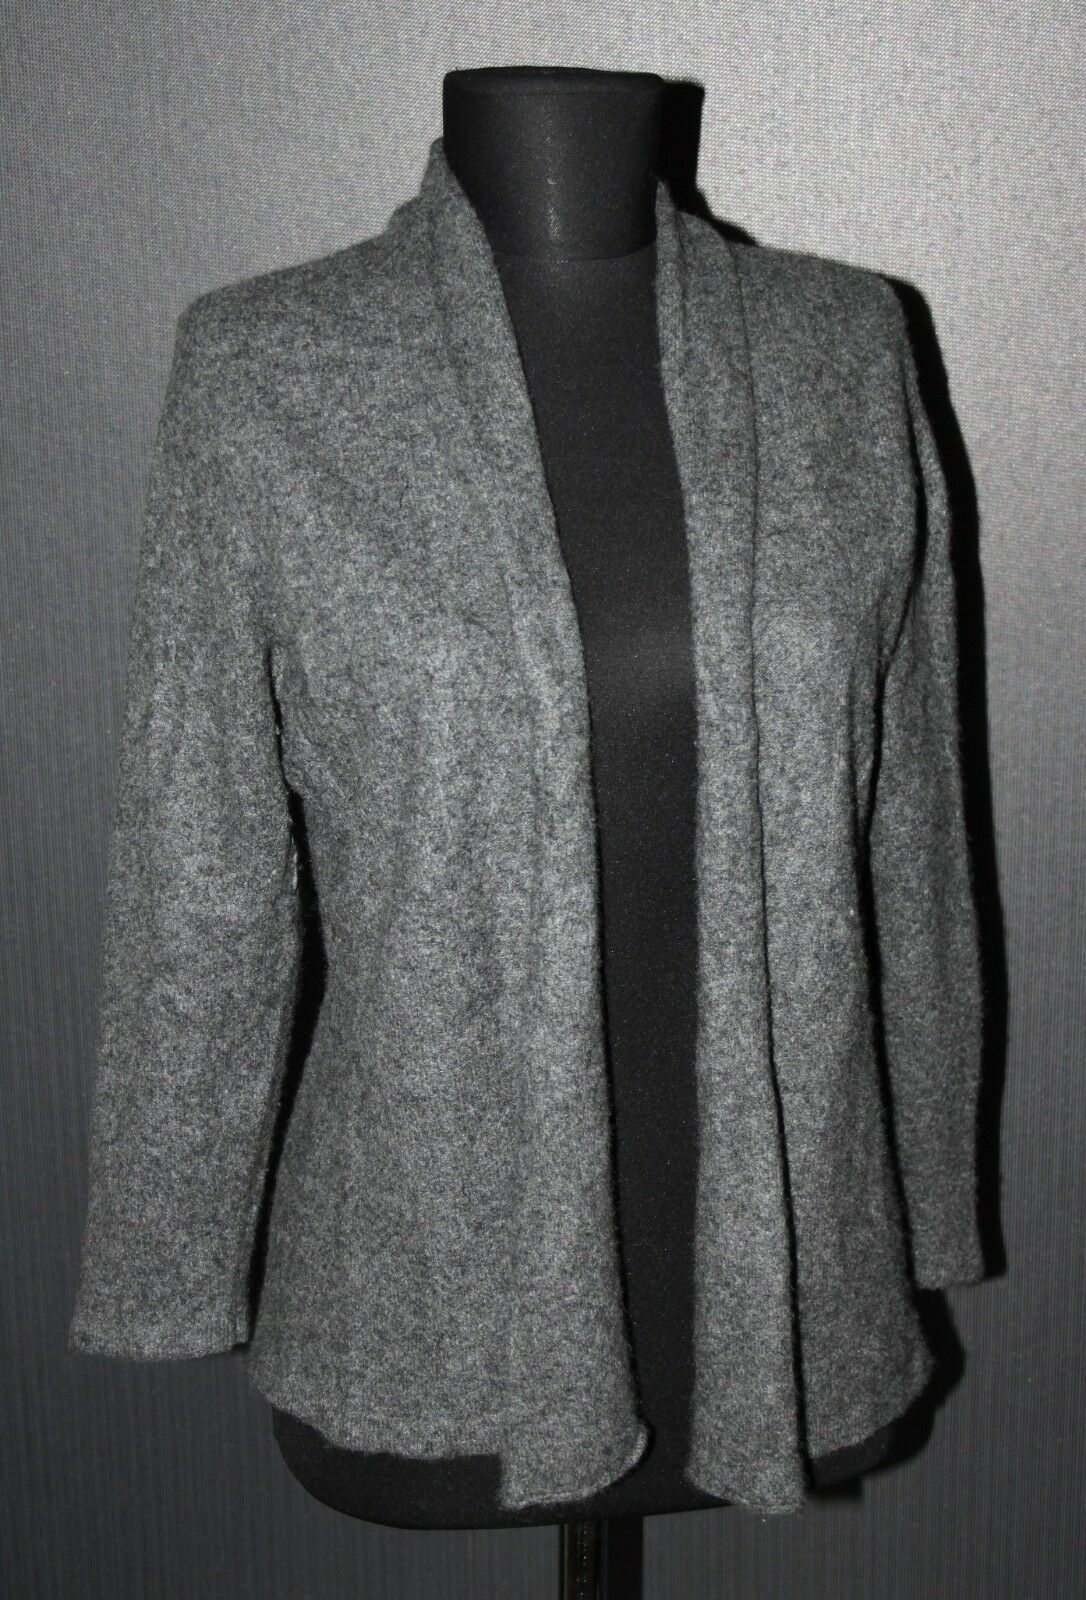 Essentials 100% cashmere women's grey cardigan jumper Size 48